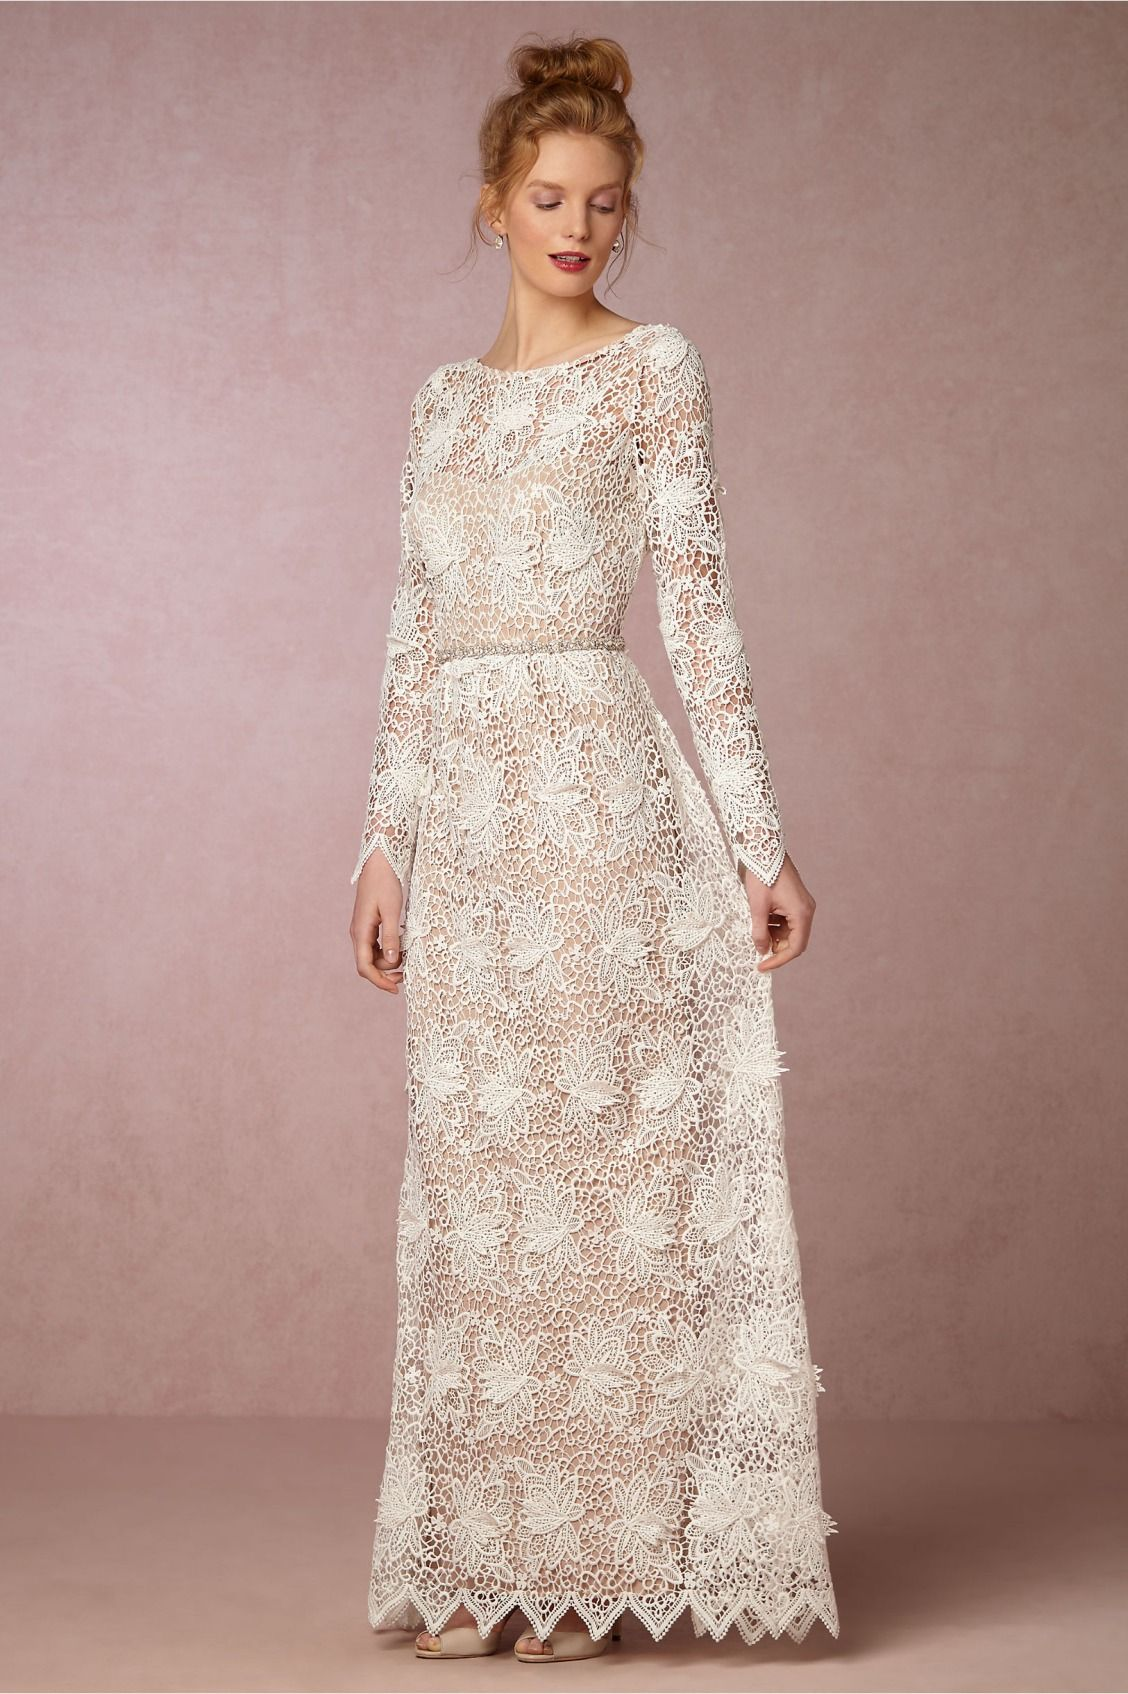 Lace dress for wedding  whimsical graphic lace  Landry Dress from BHLDN  that dress